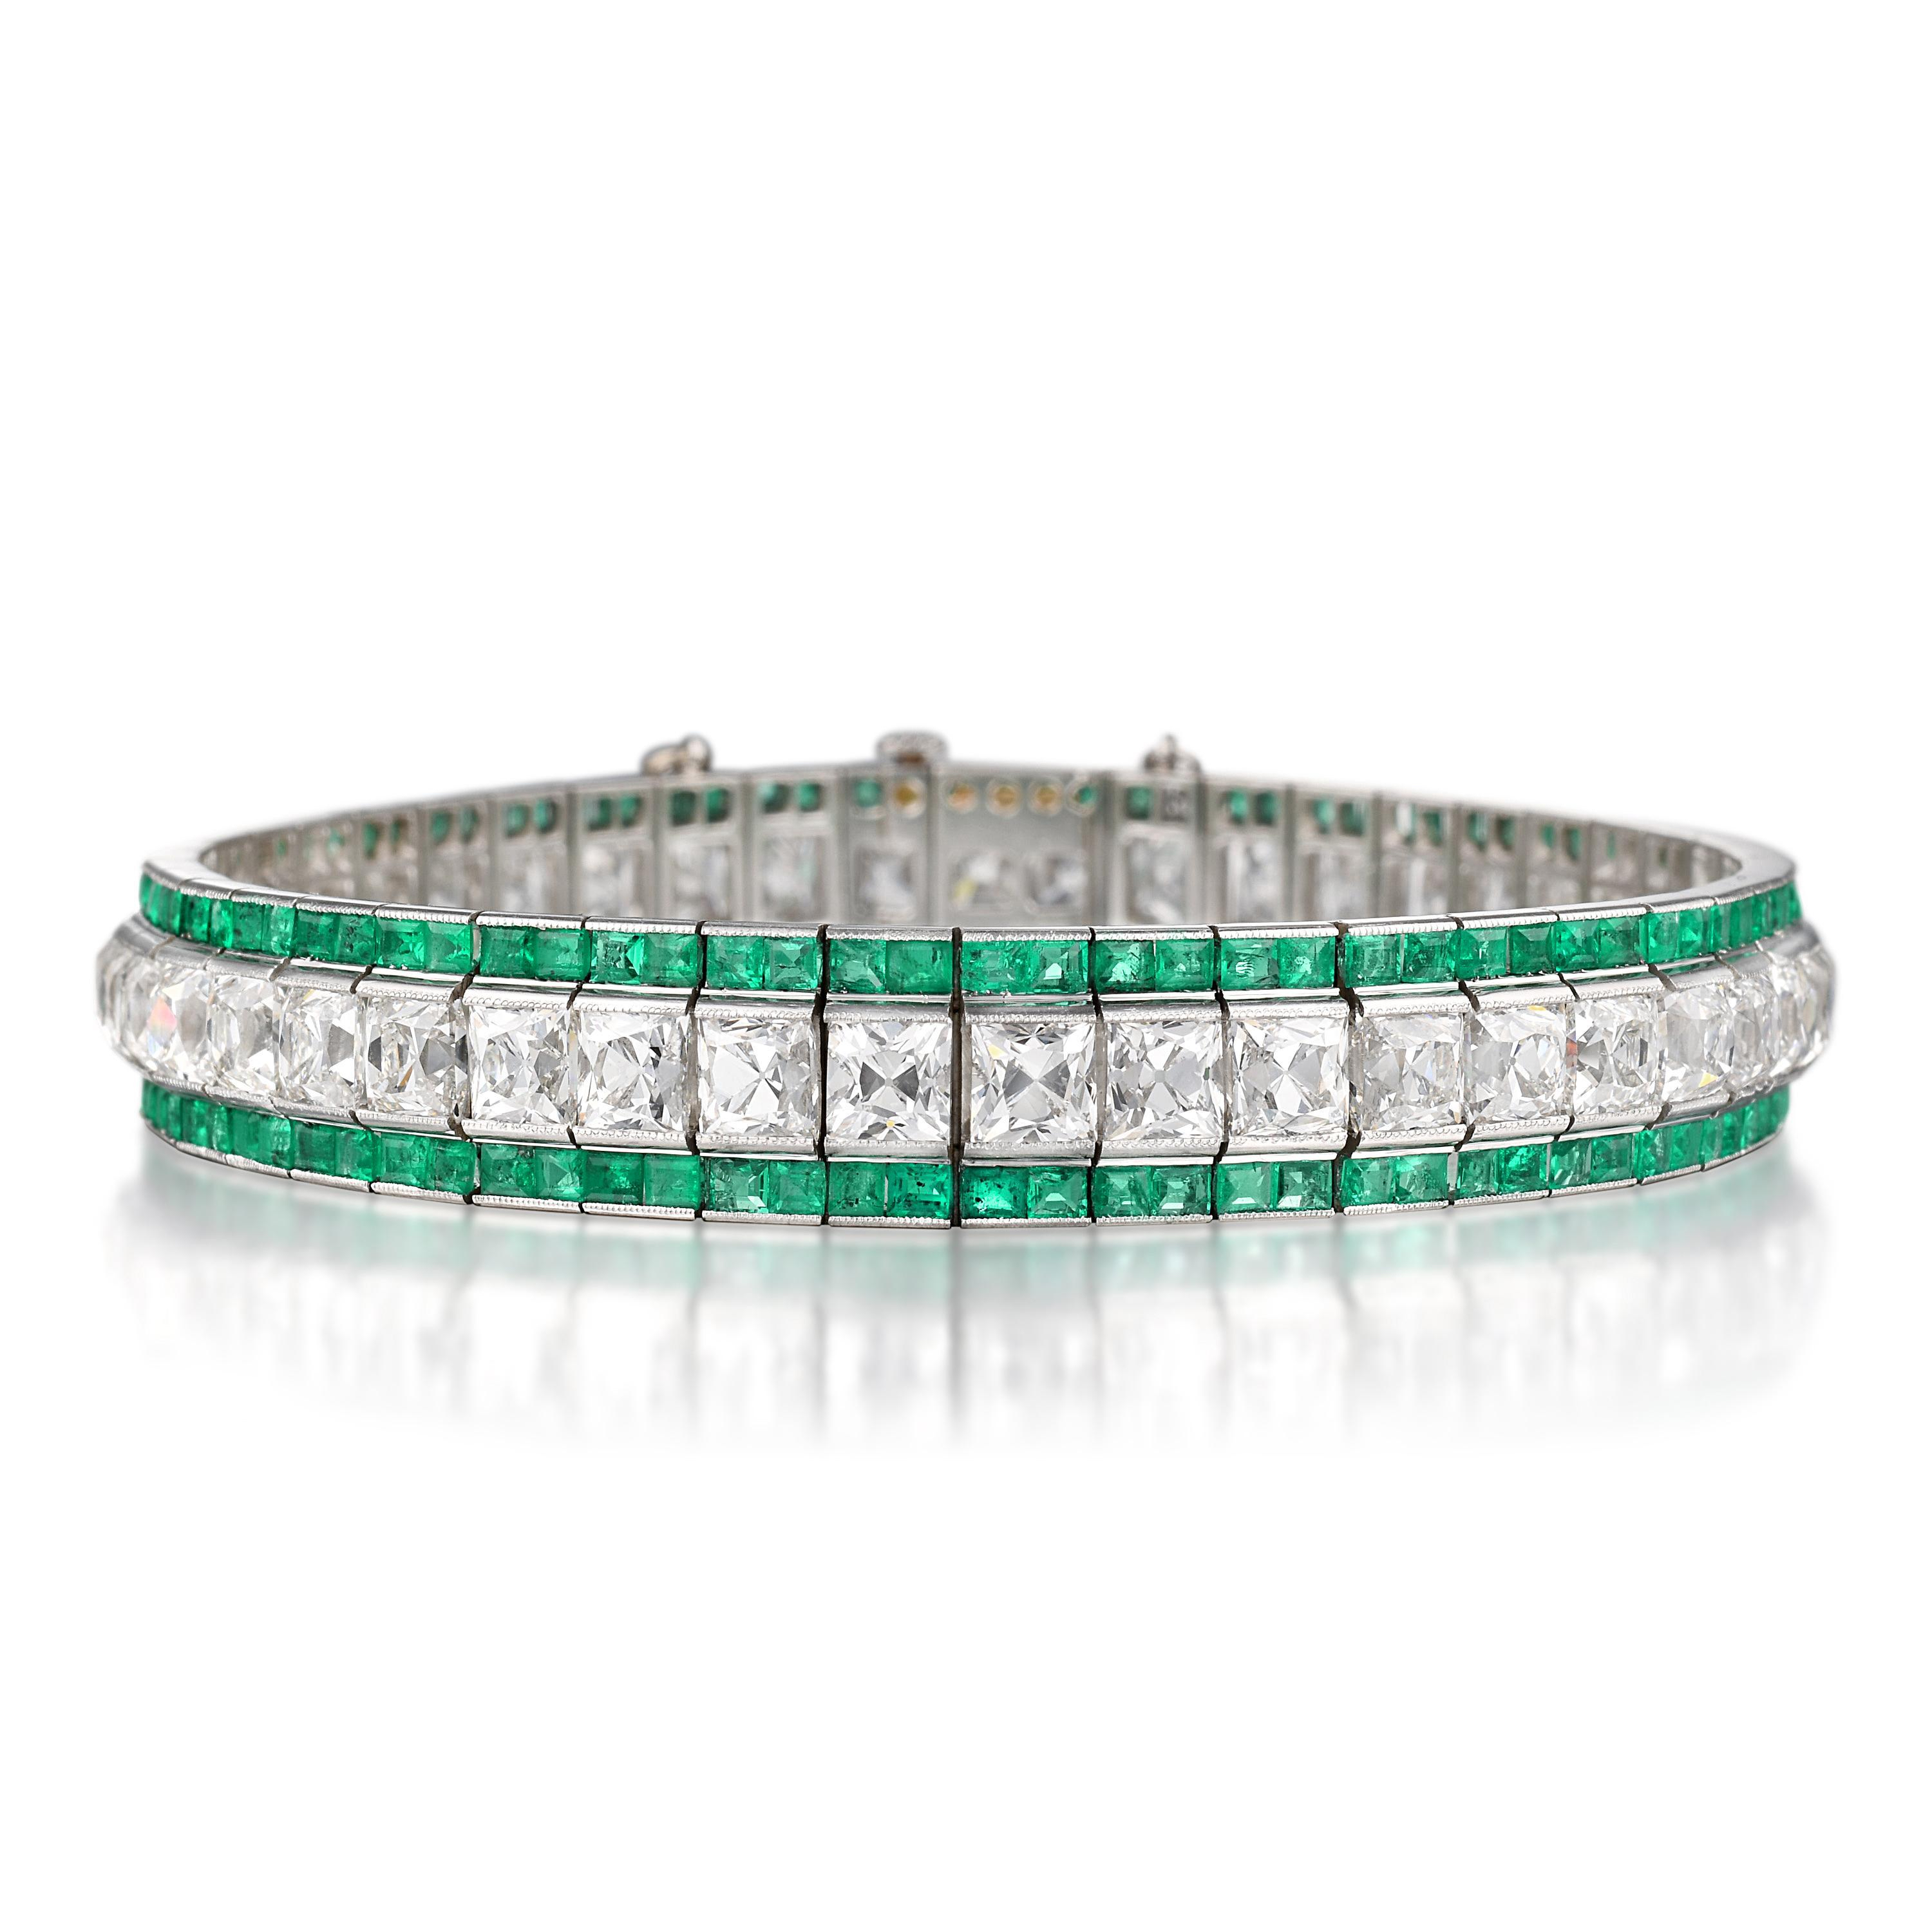 Art Deco Tiffany & Co. Emerald and Diamond Bracelet - Fortuna Important Jewels Auction - Dec 2019